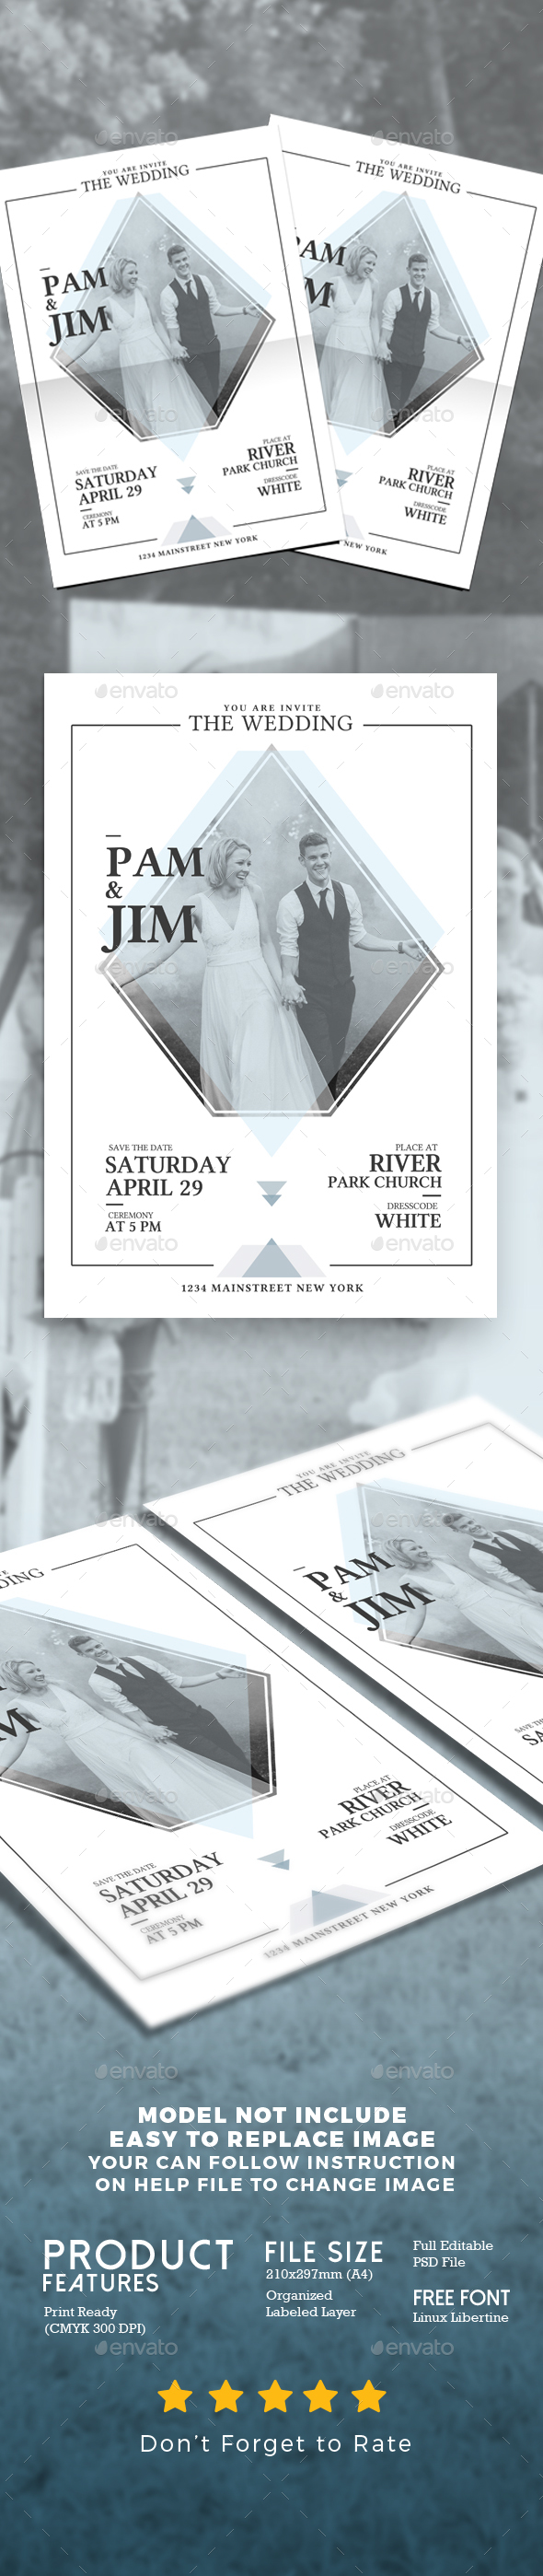 Wedding Invitation Simple Style - Weddings Cards & Invites